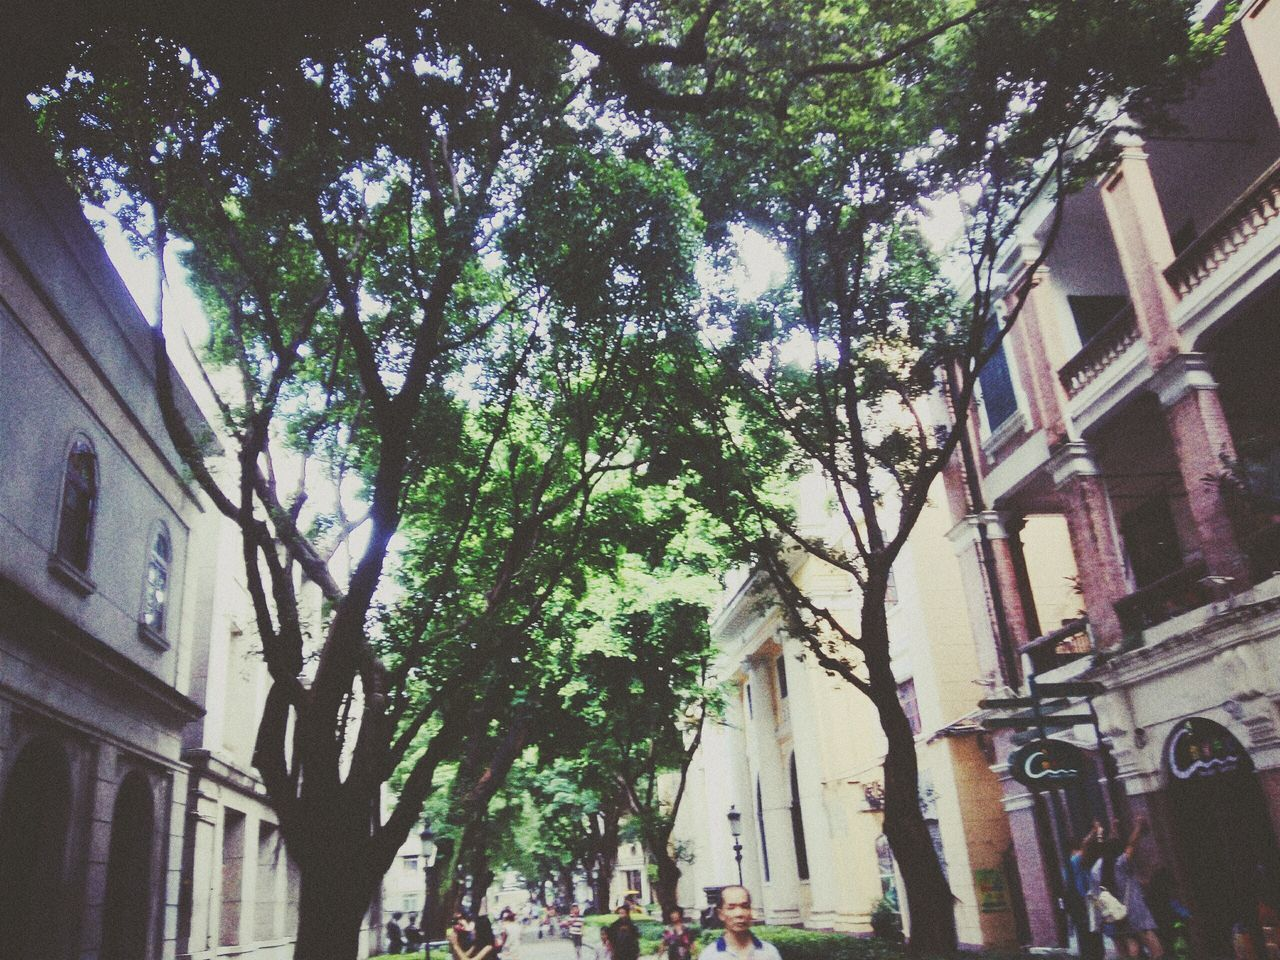 architecture, tree, building exterior, built structure, city, outdoors, branch, day, no people